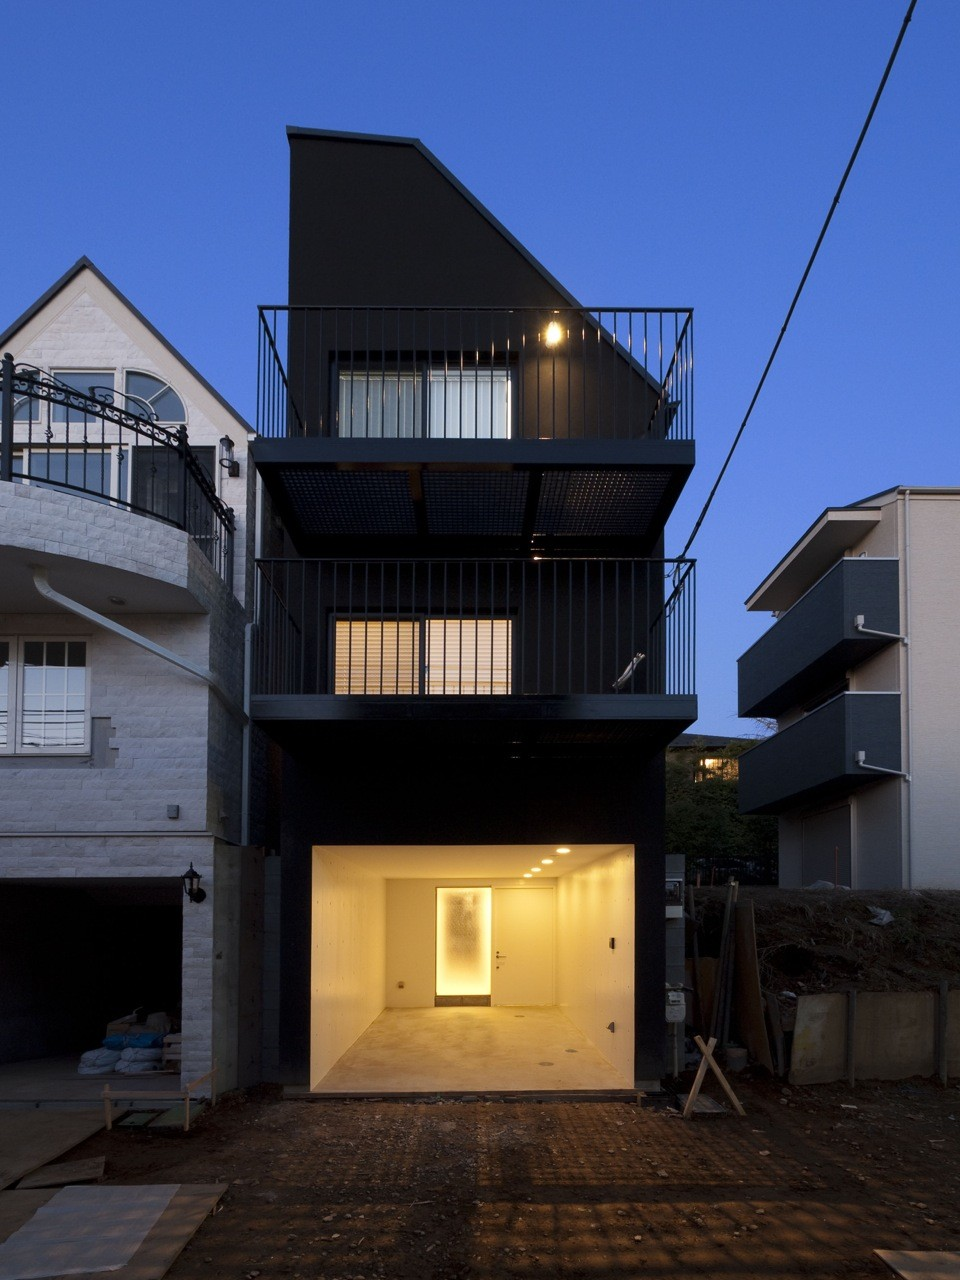 House Contrast / Key Operation, © Tokyo gumi, KOP